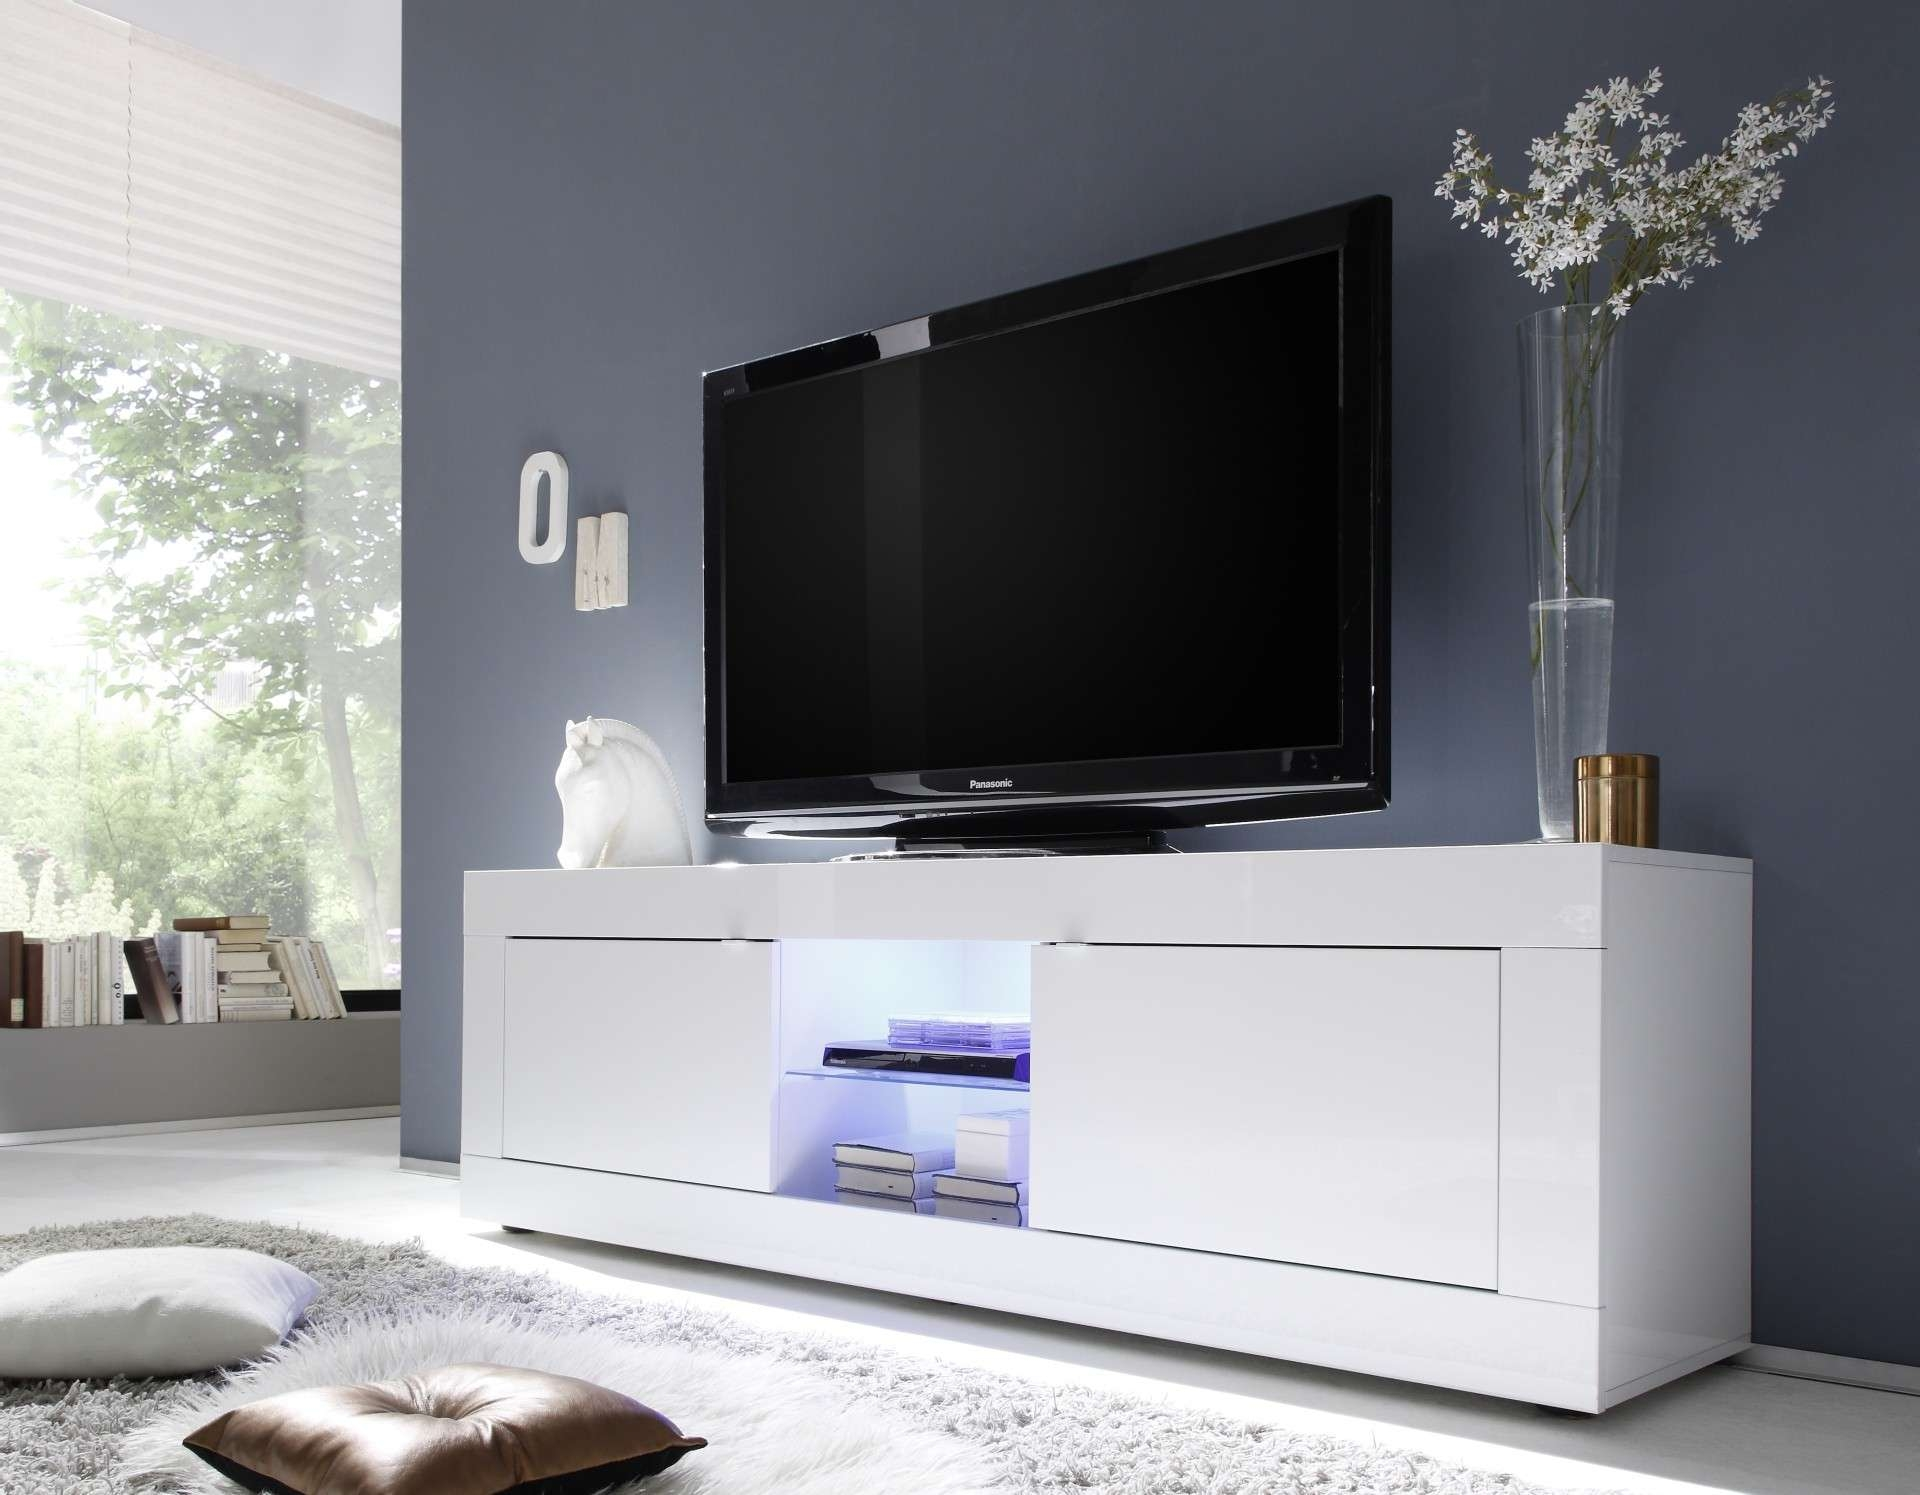 Dolcevita Ii Gloss Tv Stand – Tv Stands – Sena Home Furniture For Gloss White Tv Stands (View 5 of 15)